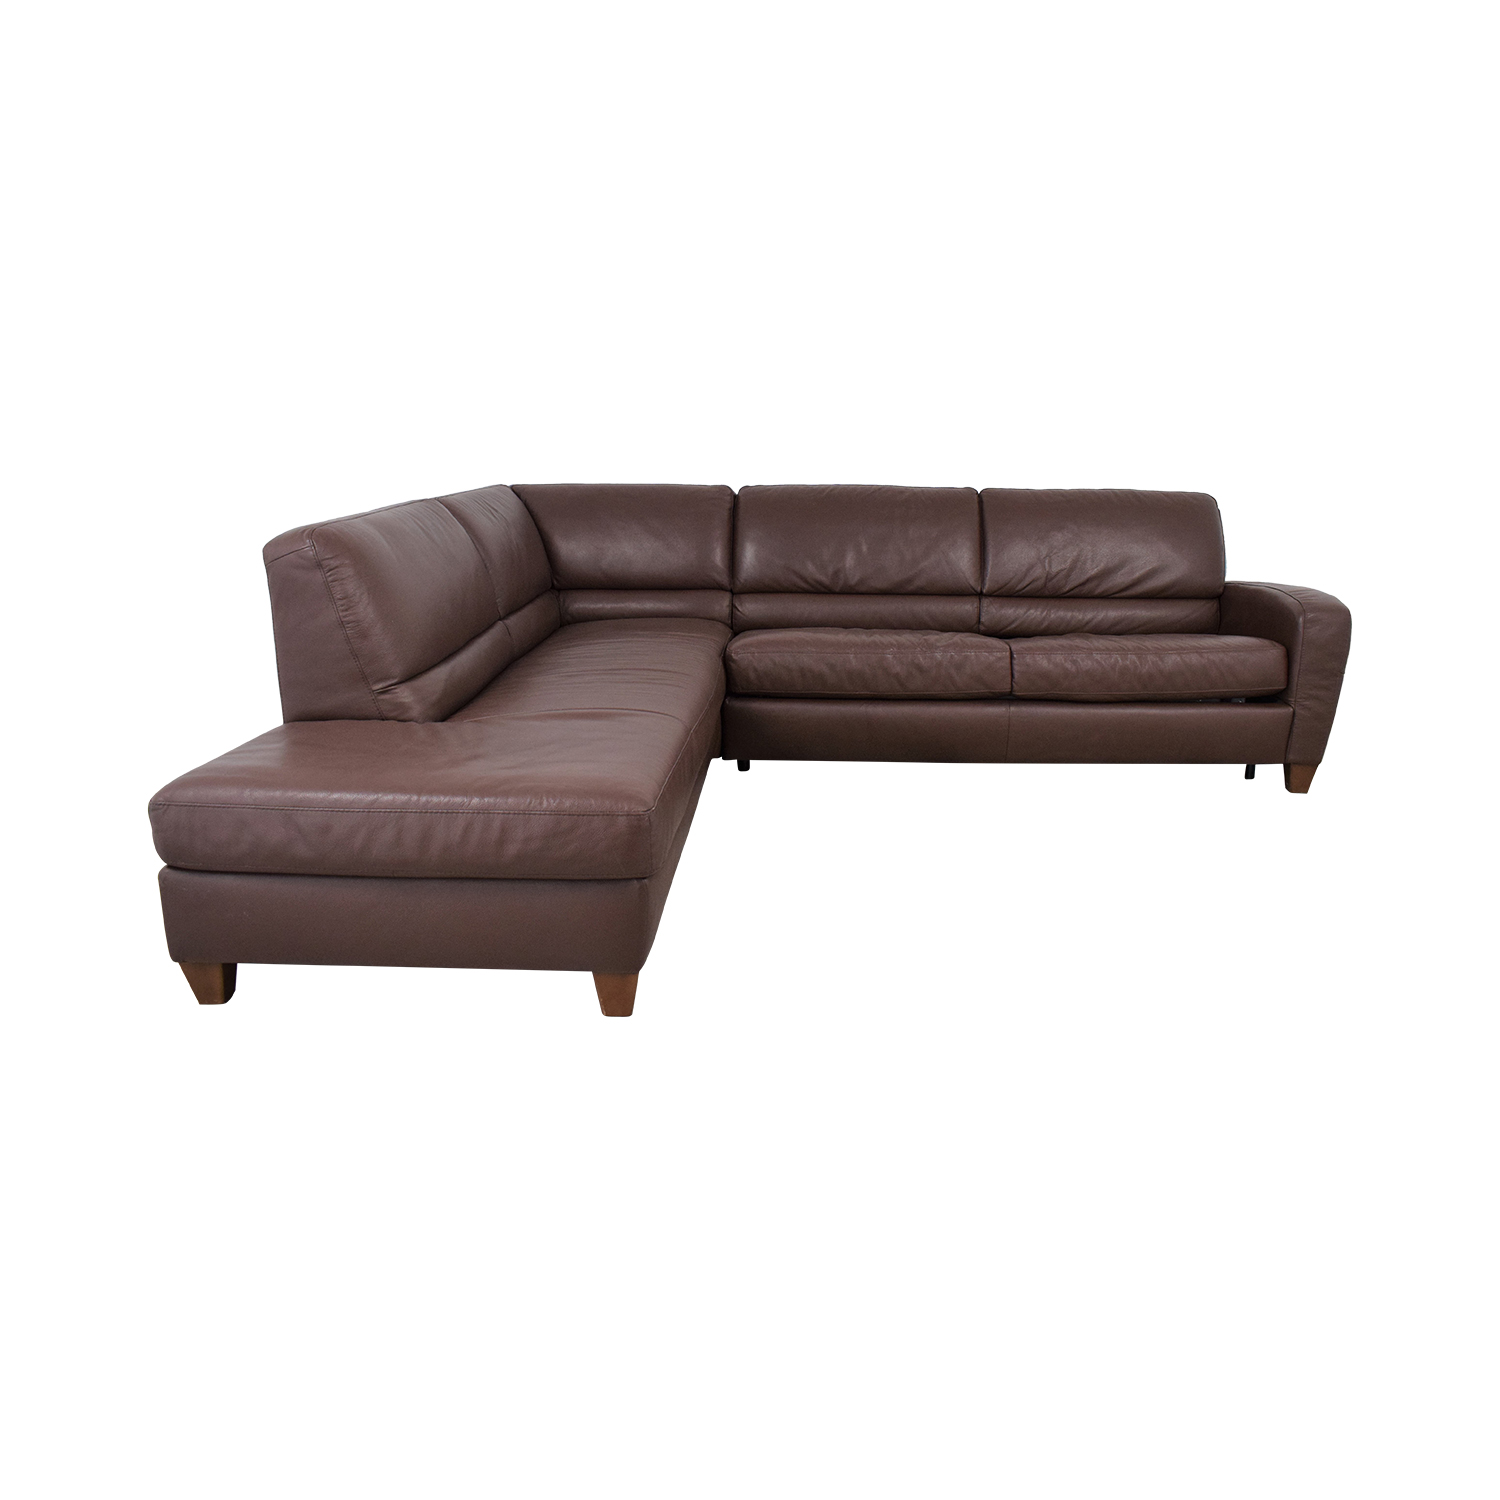 Italsofa Italsofa Sectional Sleeper Sofa with Chaise ct